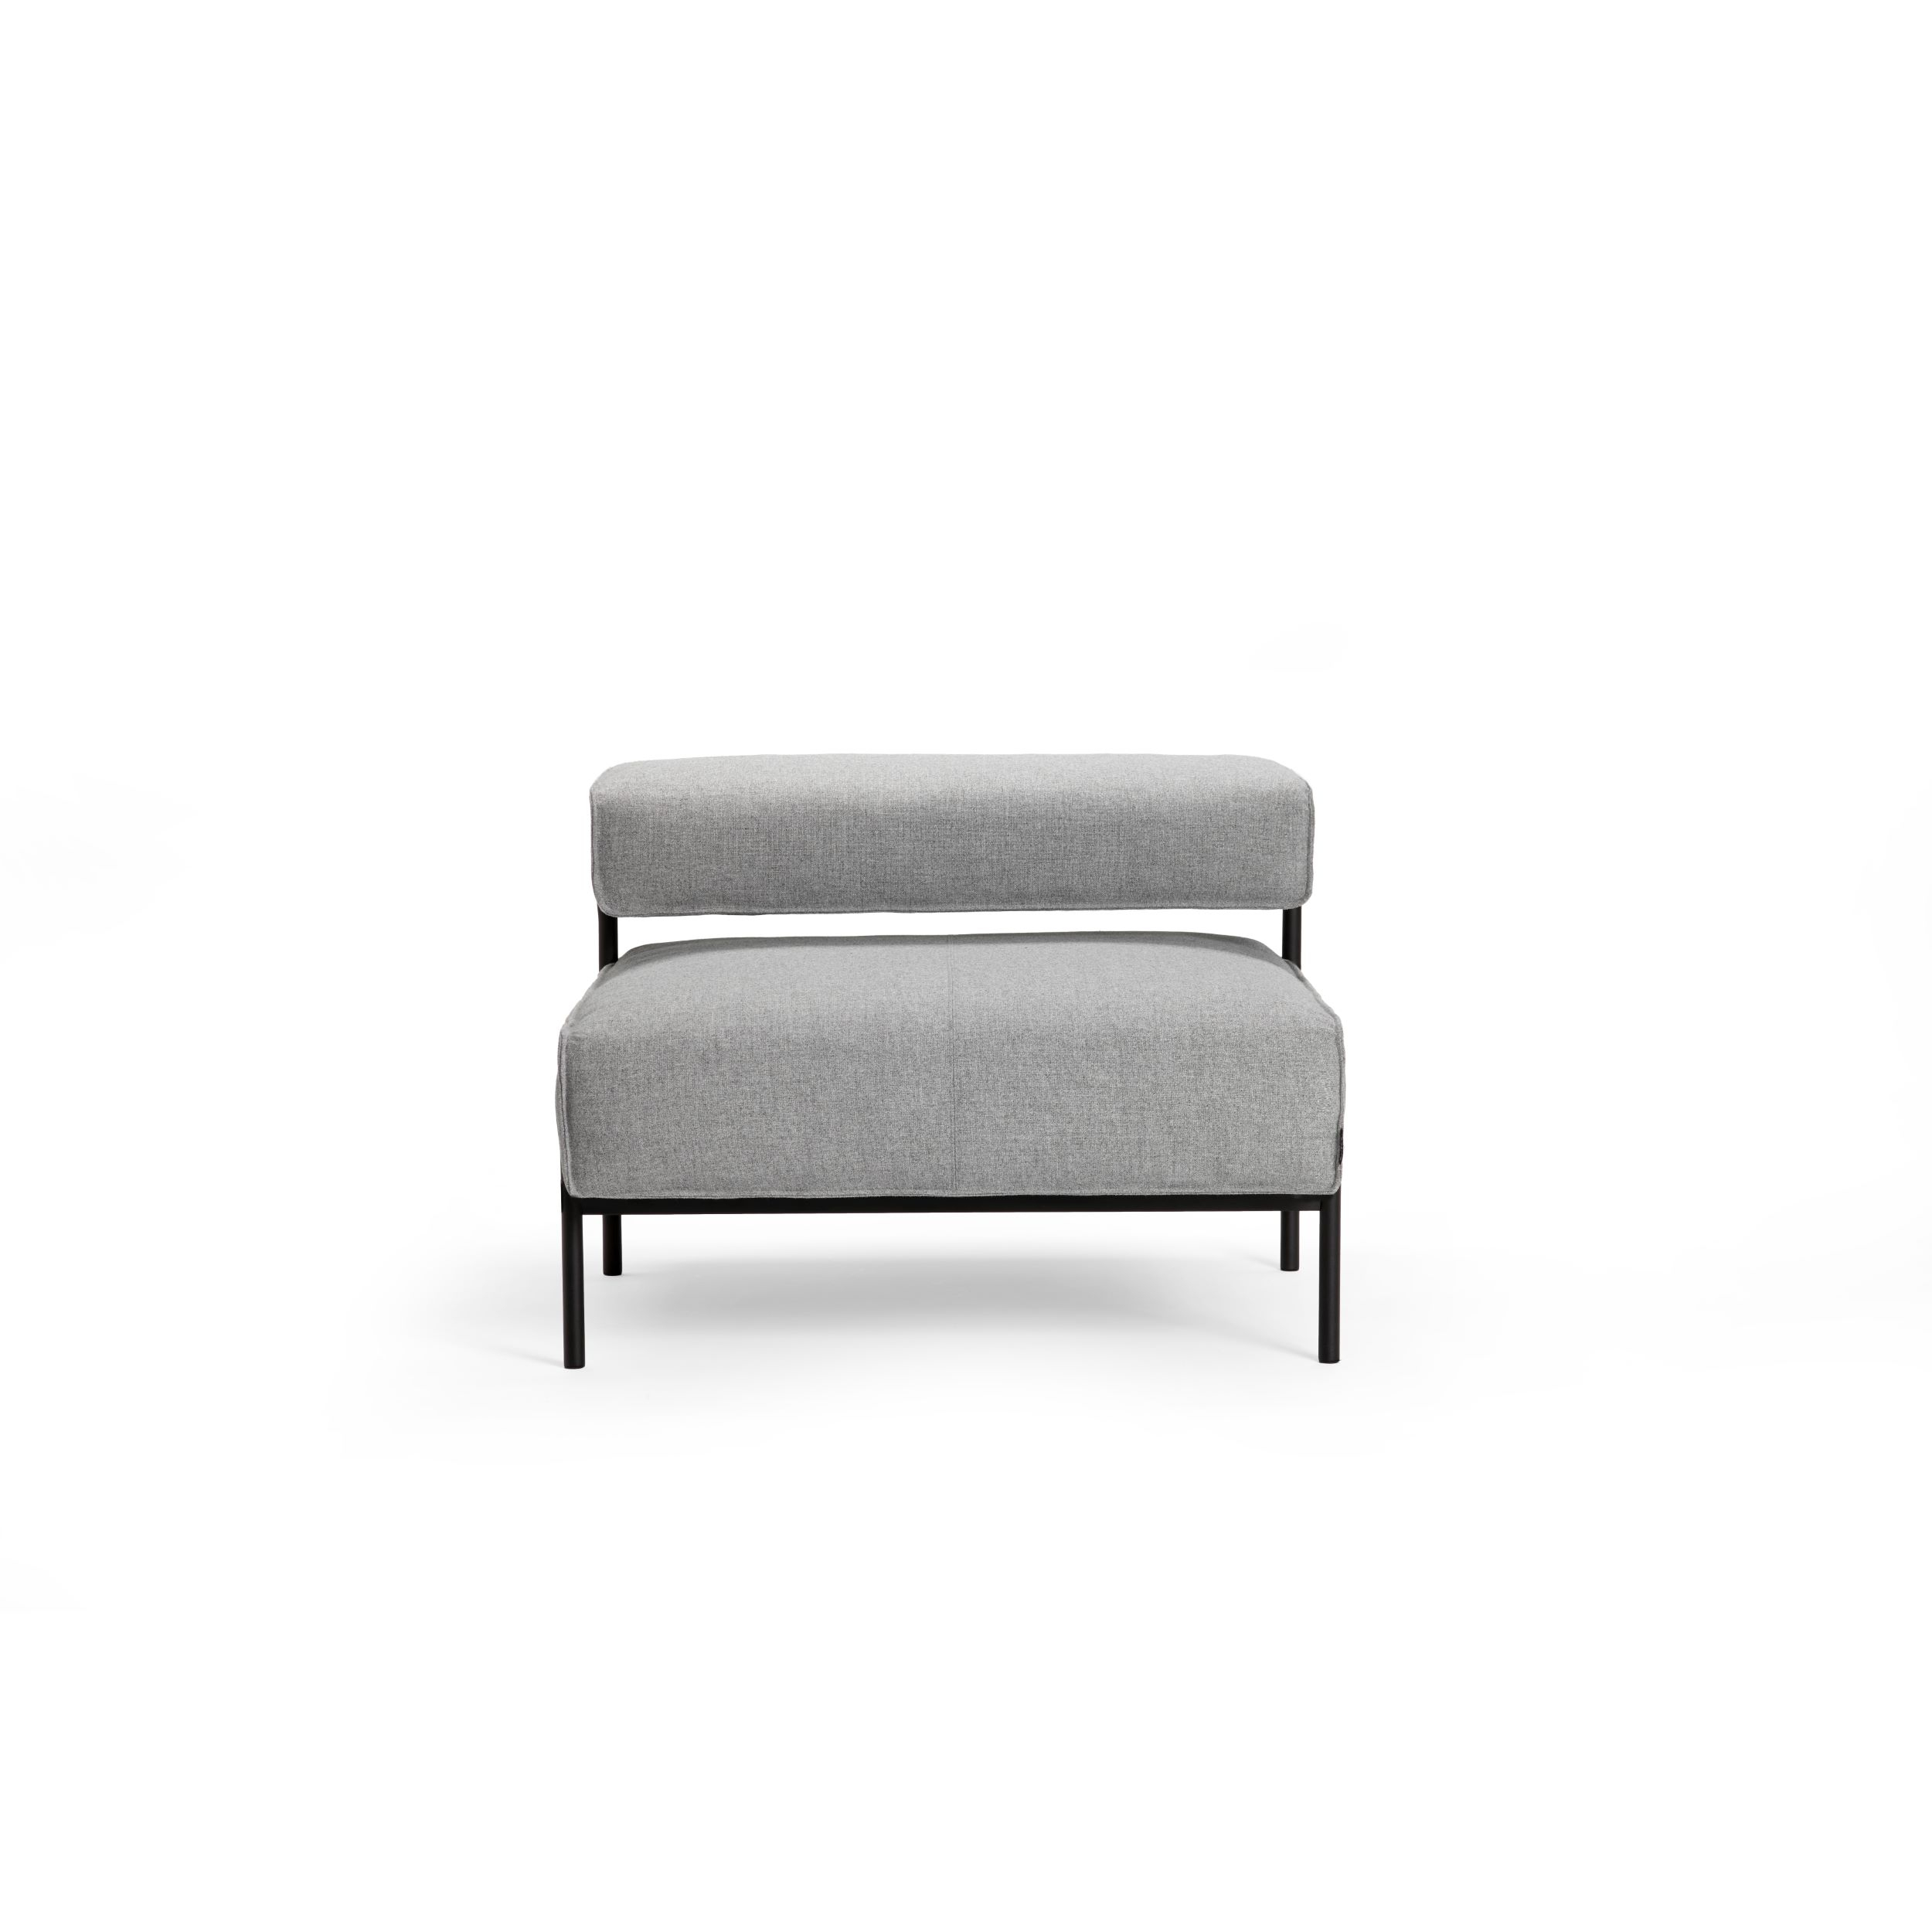 Lucy, B10 | Offecct For Lucy Grey Sofa Chairs (Image 13 of 20)